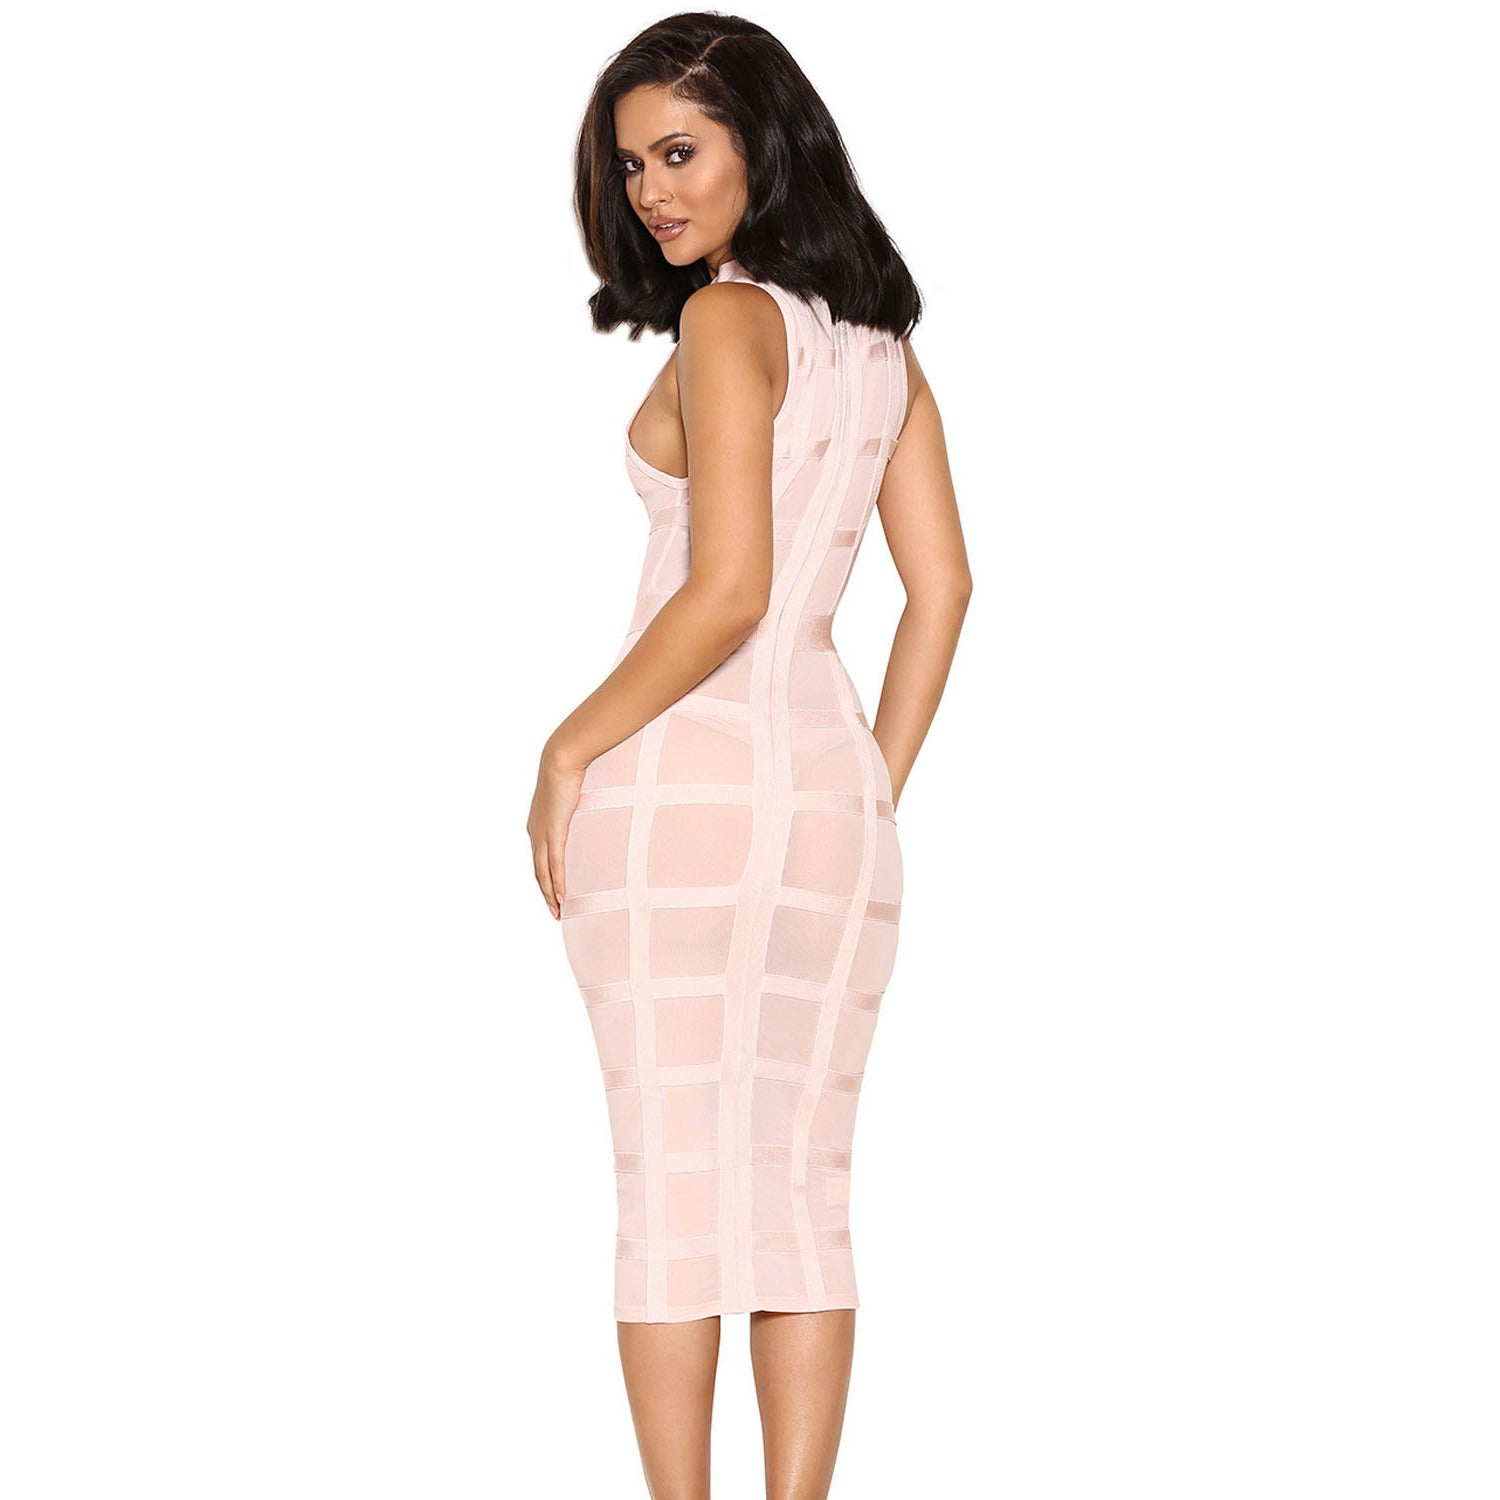 Cute Pink Grid Frock Bandage Dress LAVELIQ SALE - LAVELIQ - 2